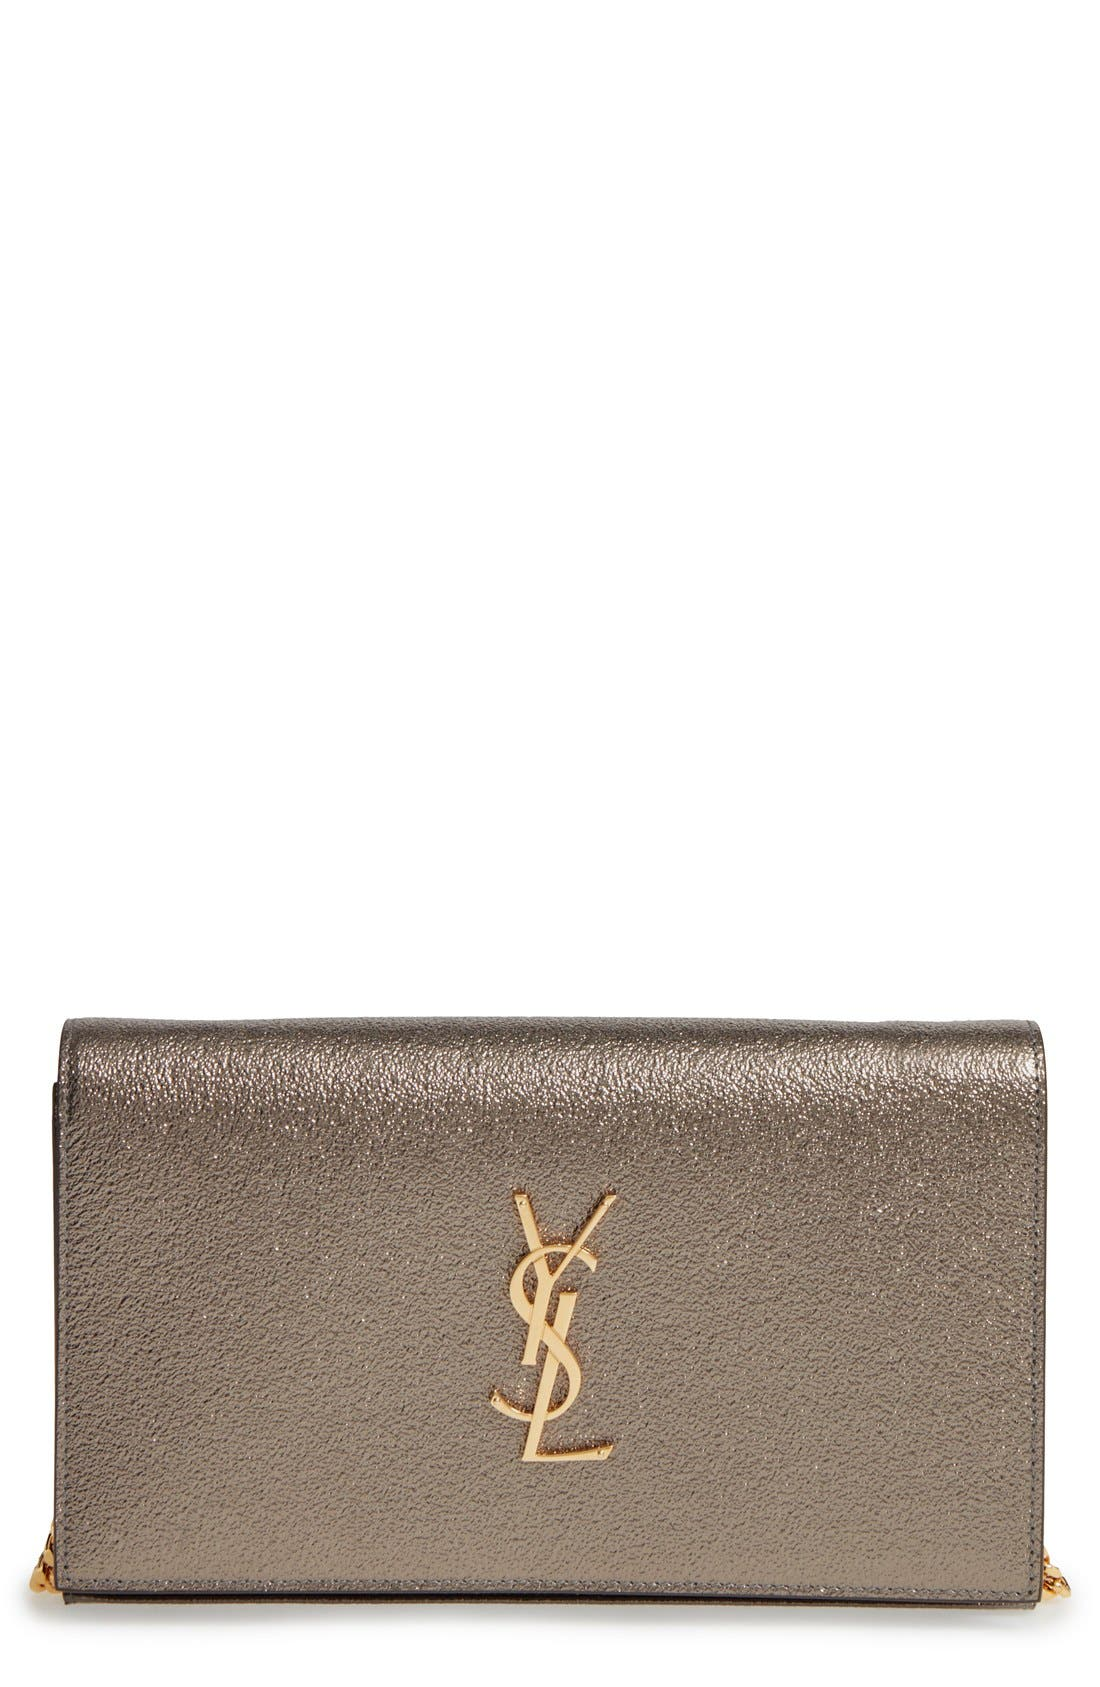 Alternate Image 1 Selected - Saint Laurent Leather Wallet on a Chain